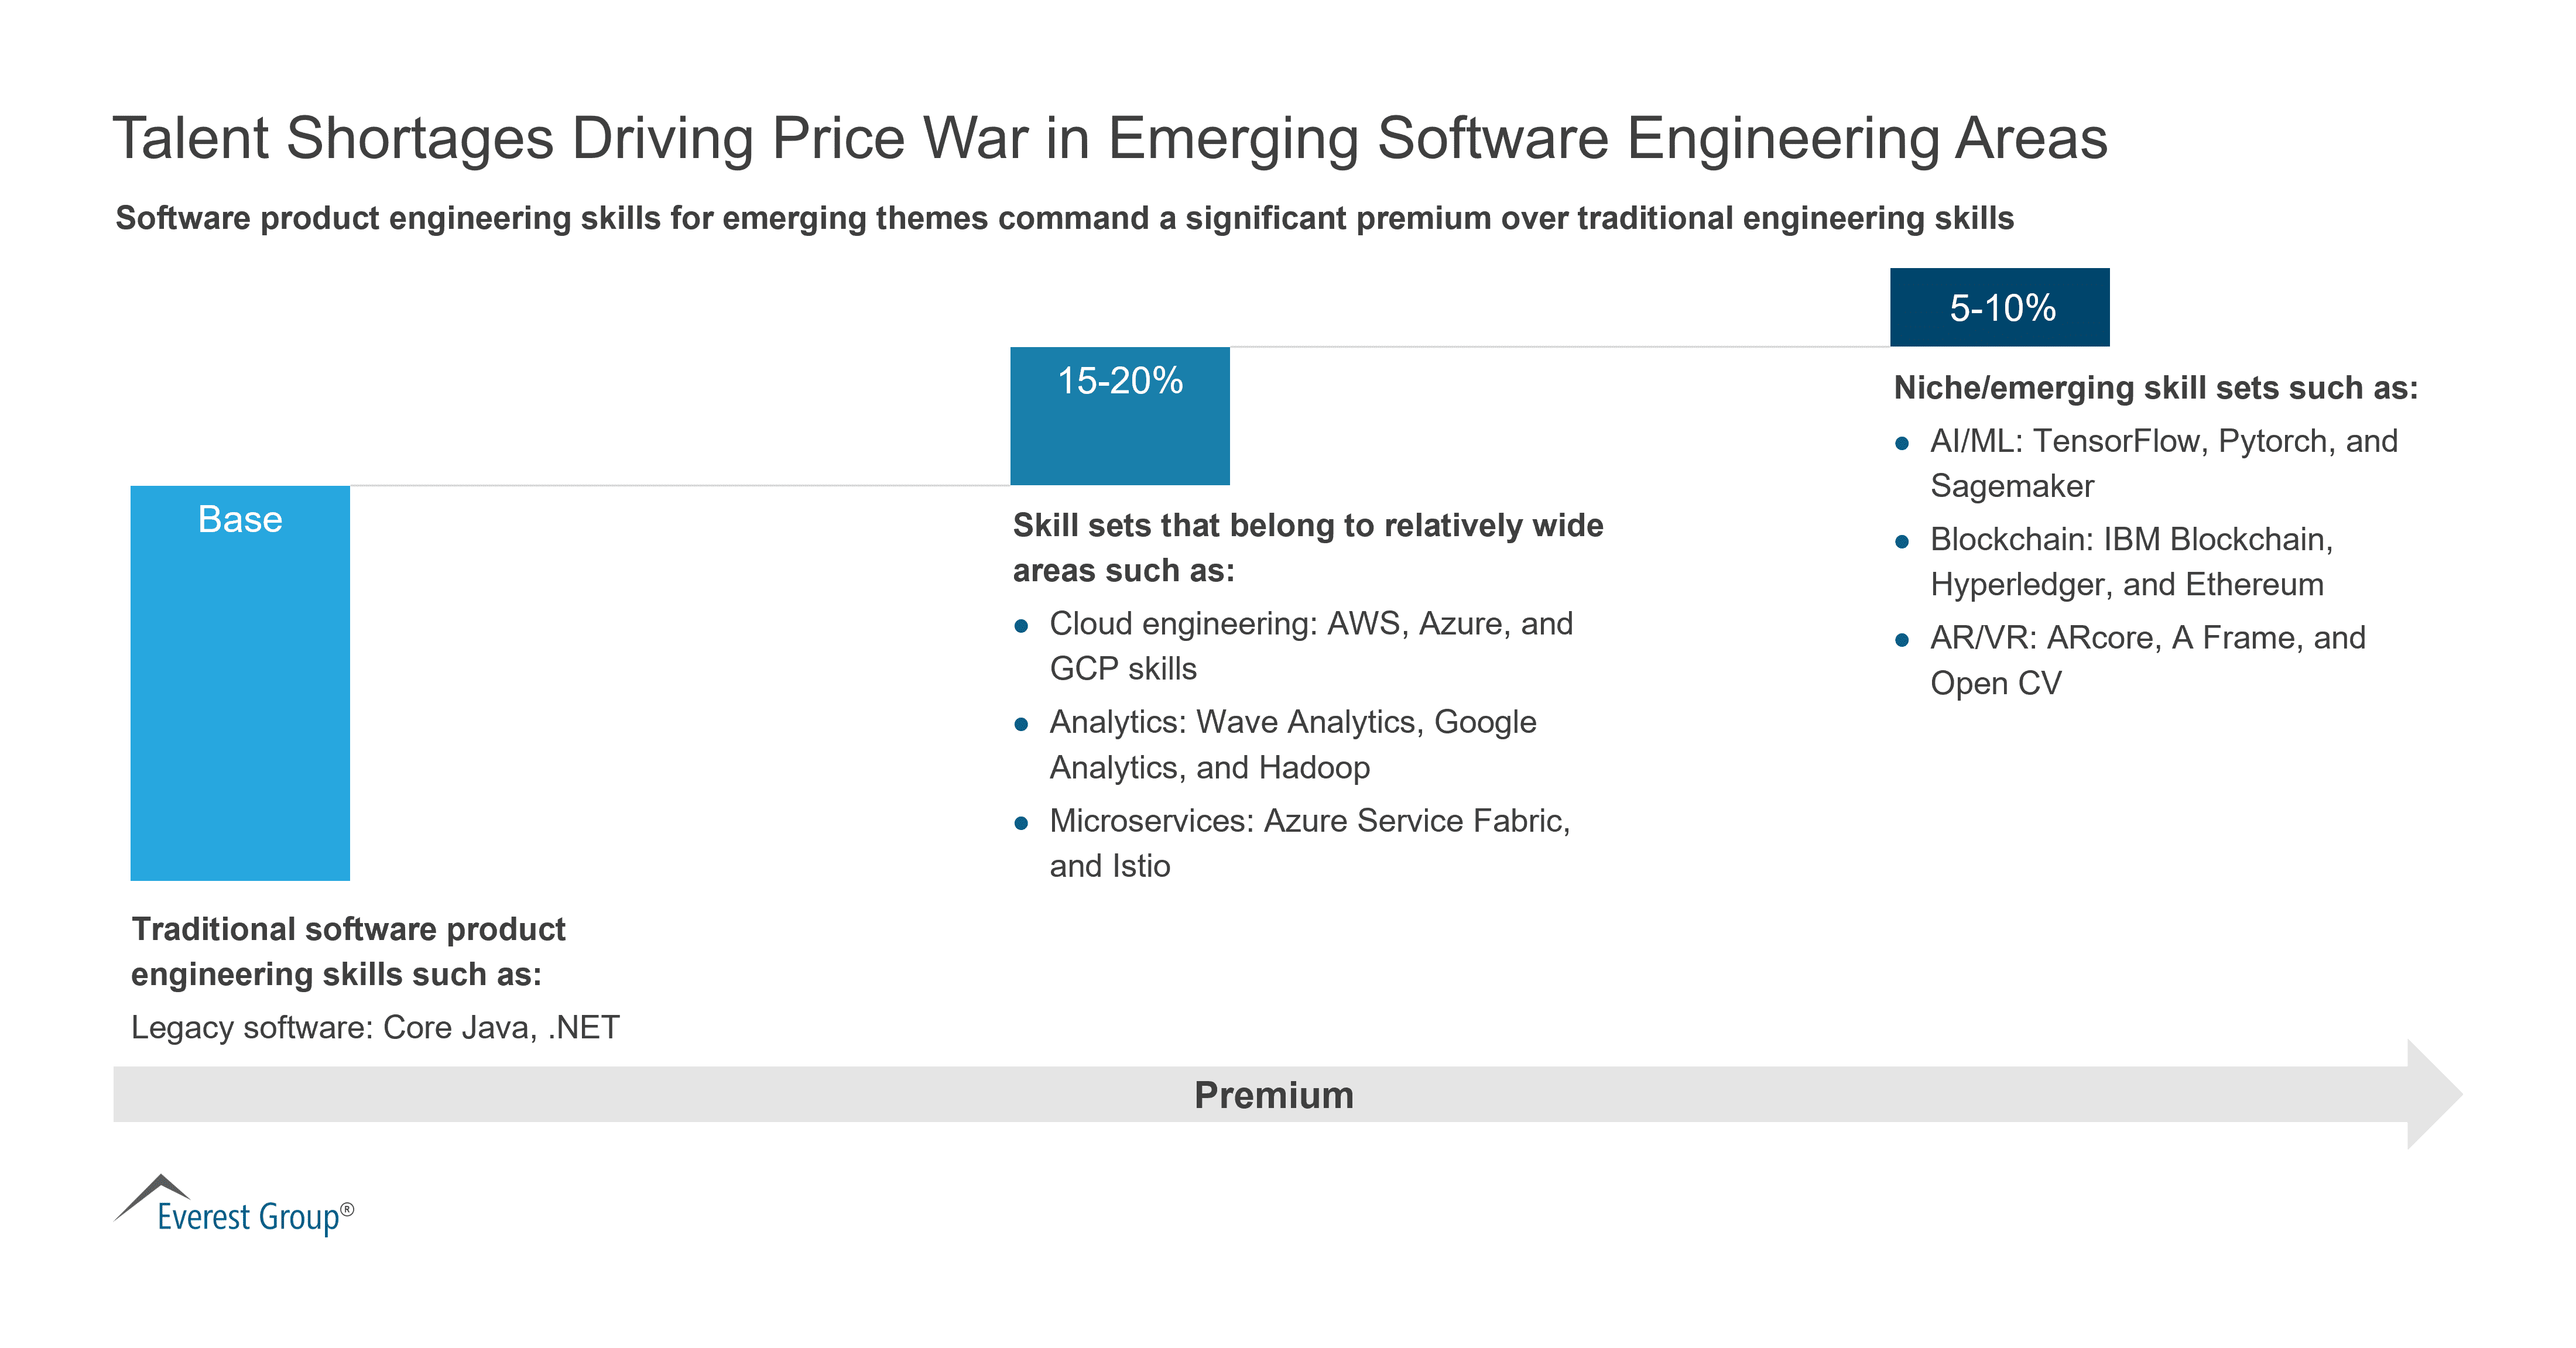 Talent Shortages in Software Product Engineering